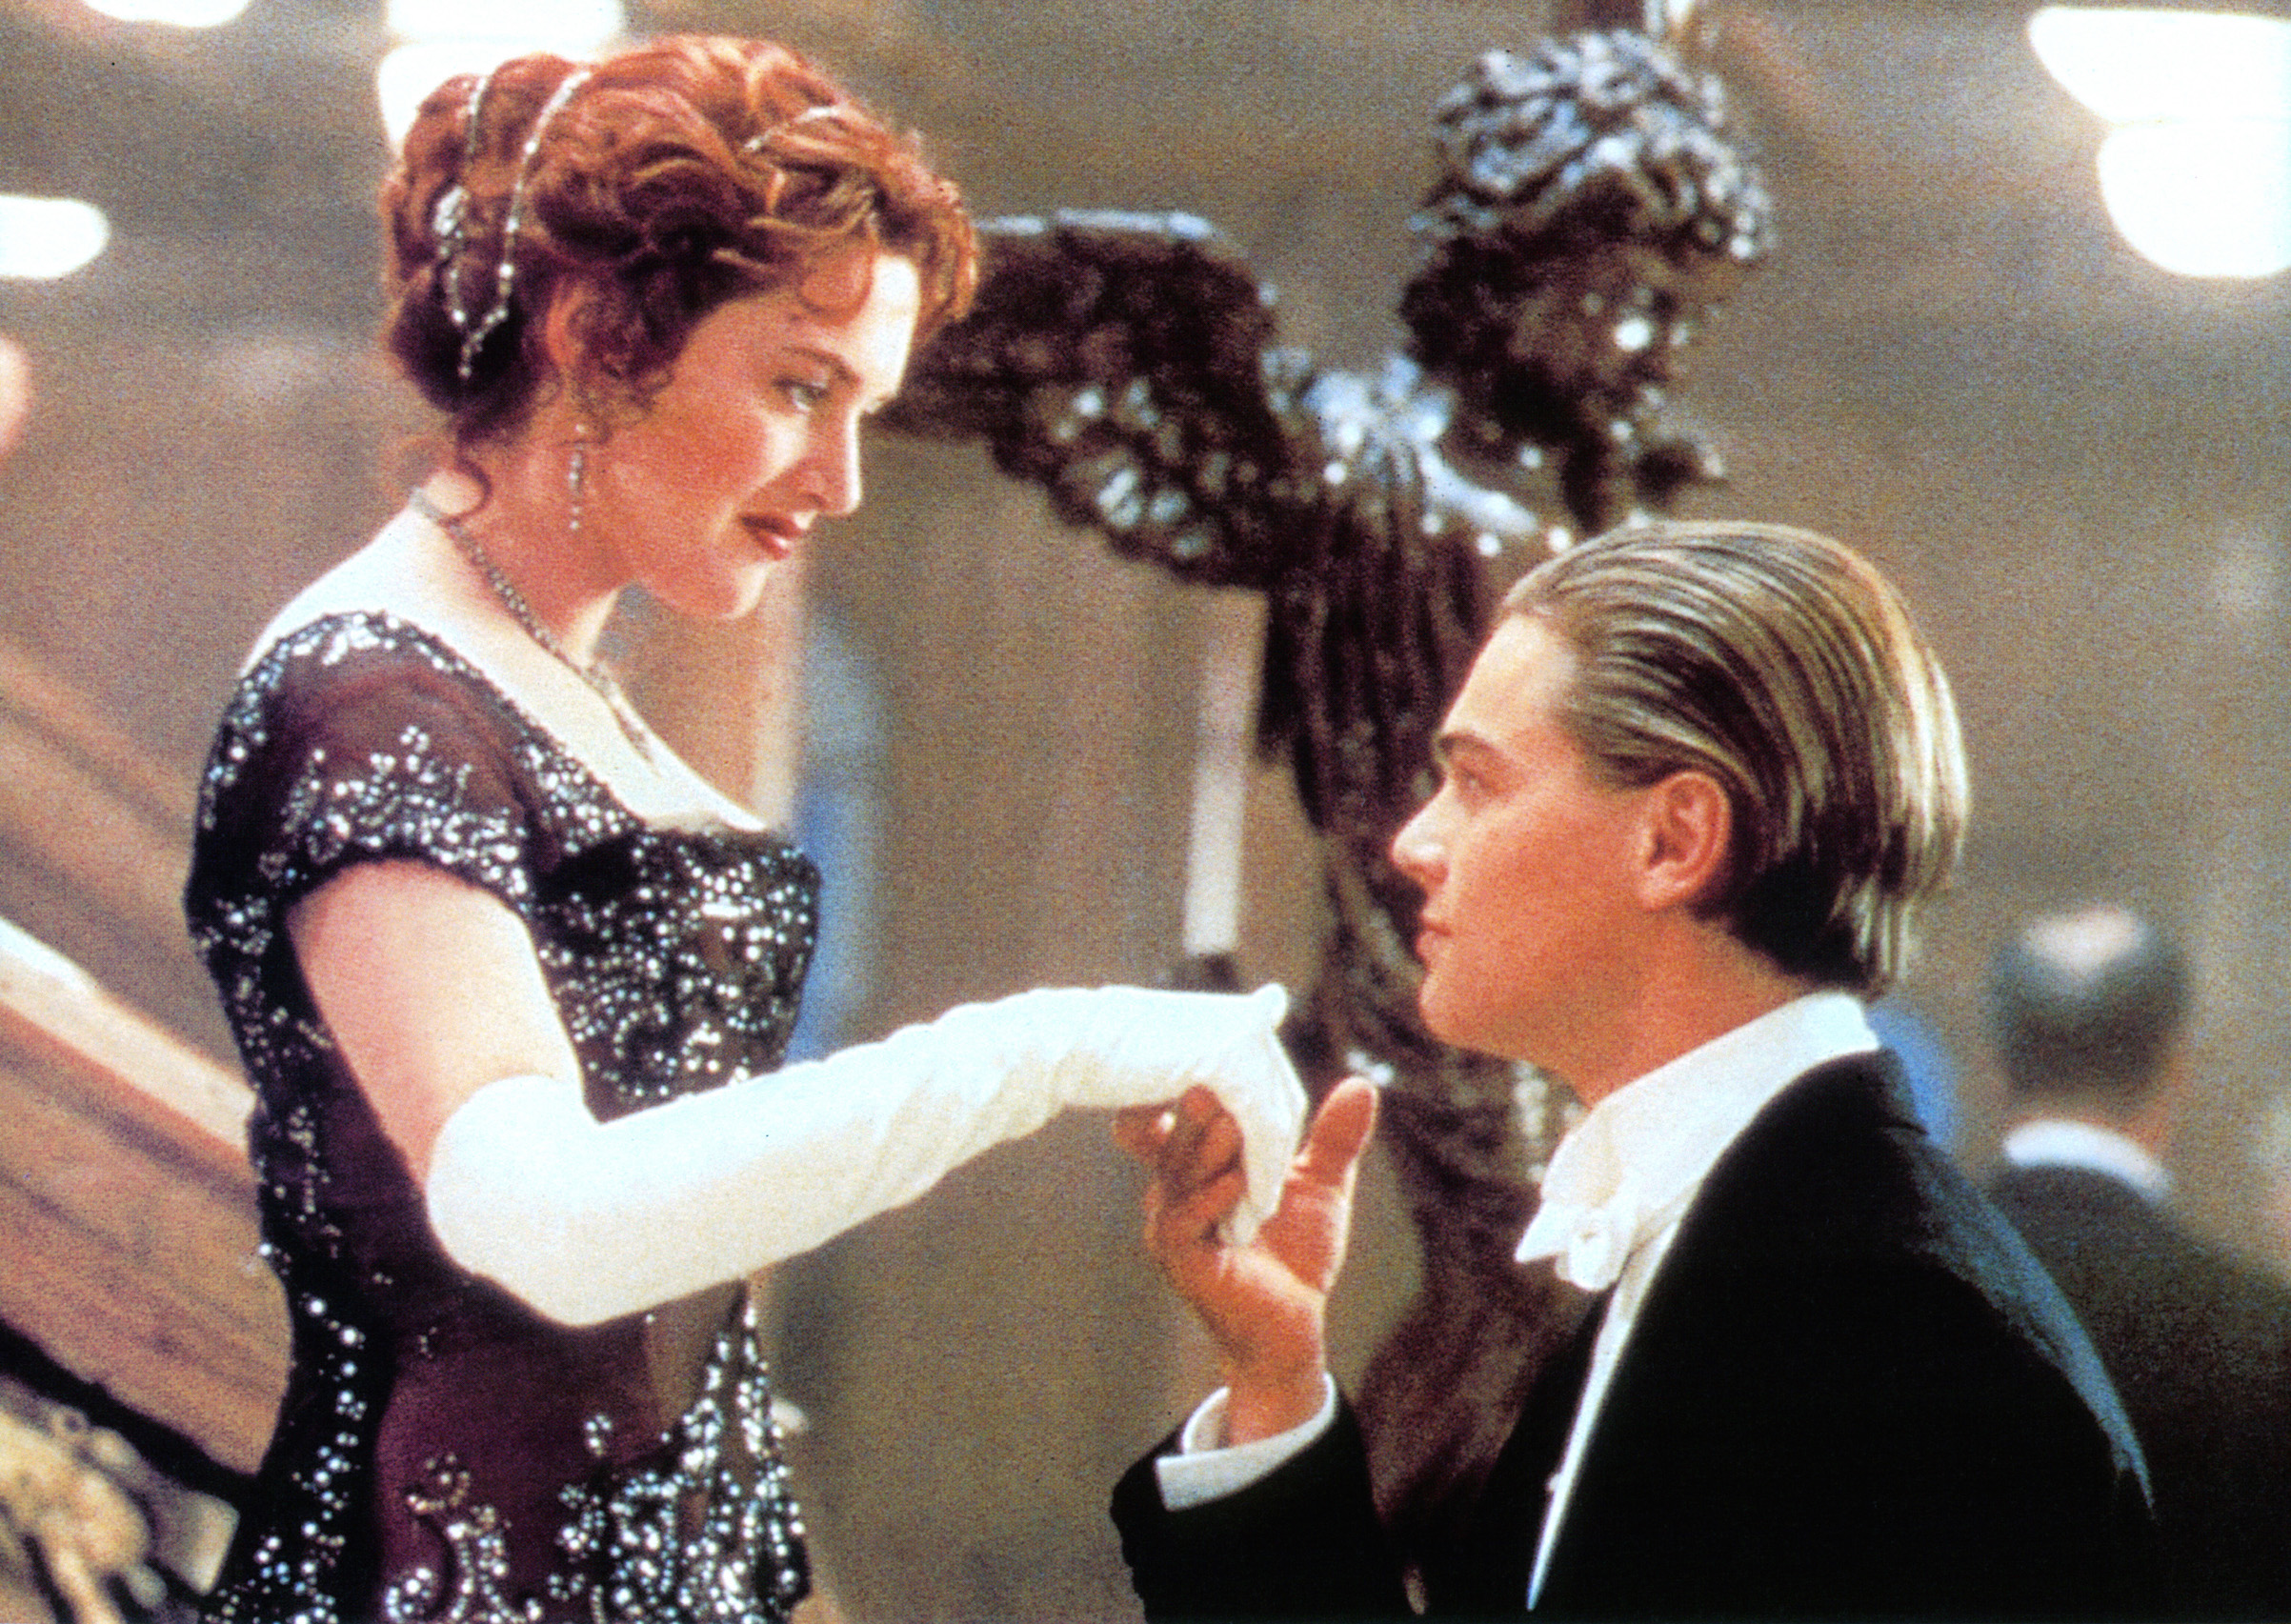 Kate Winslet offers her hand to Leonardo DiCaprio in a scene from the film Titanic, 1997.